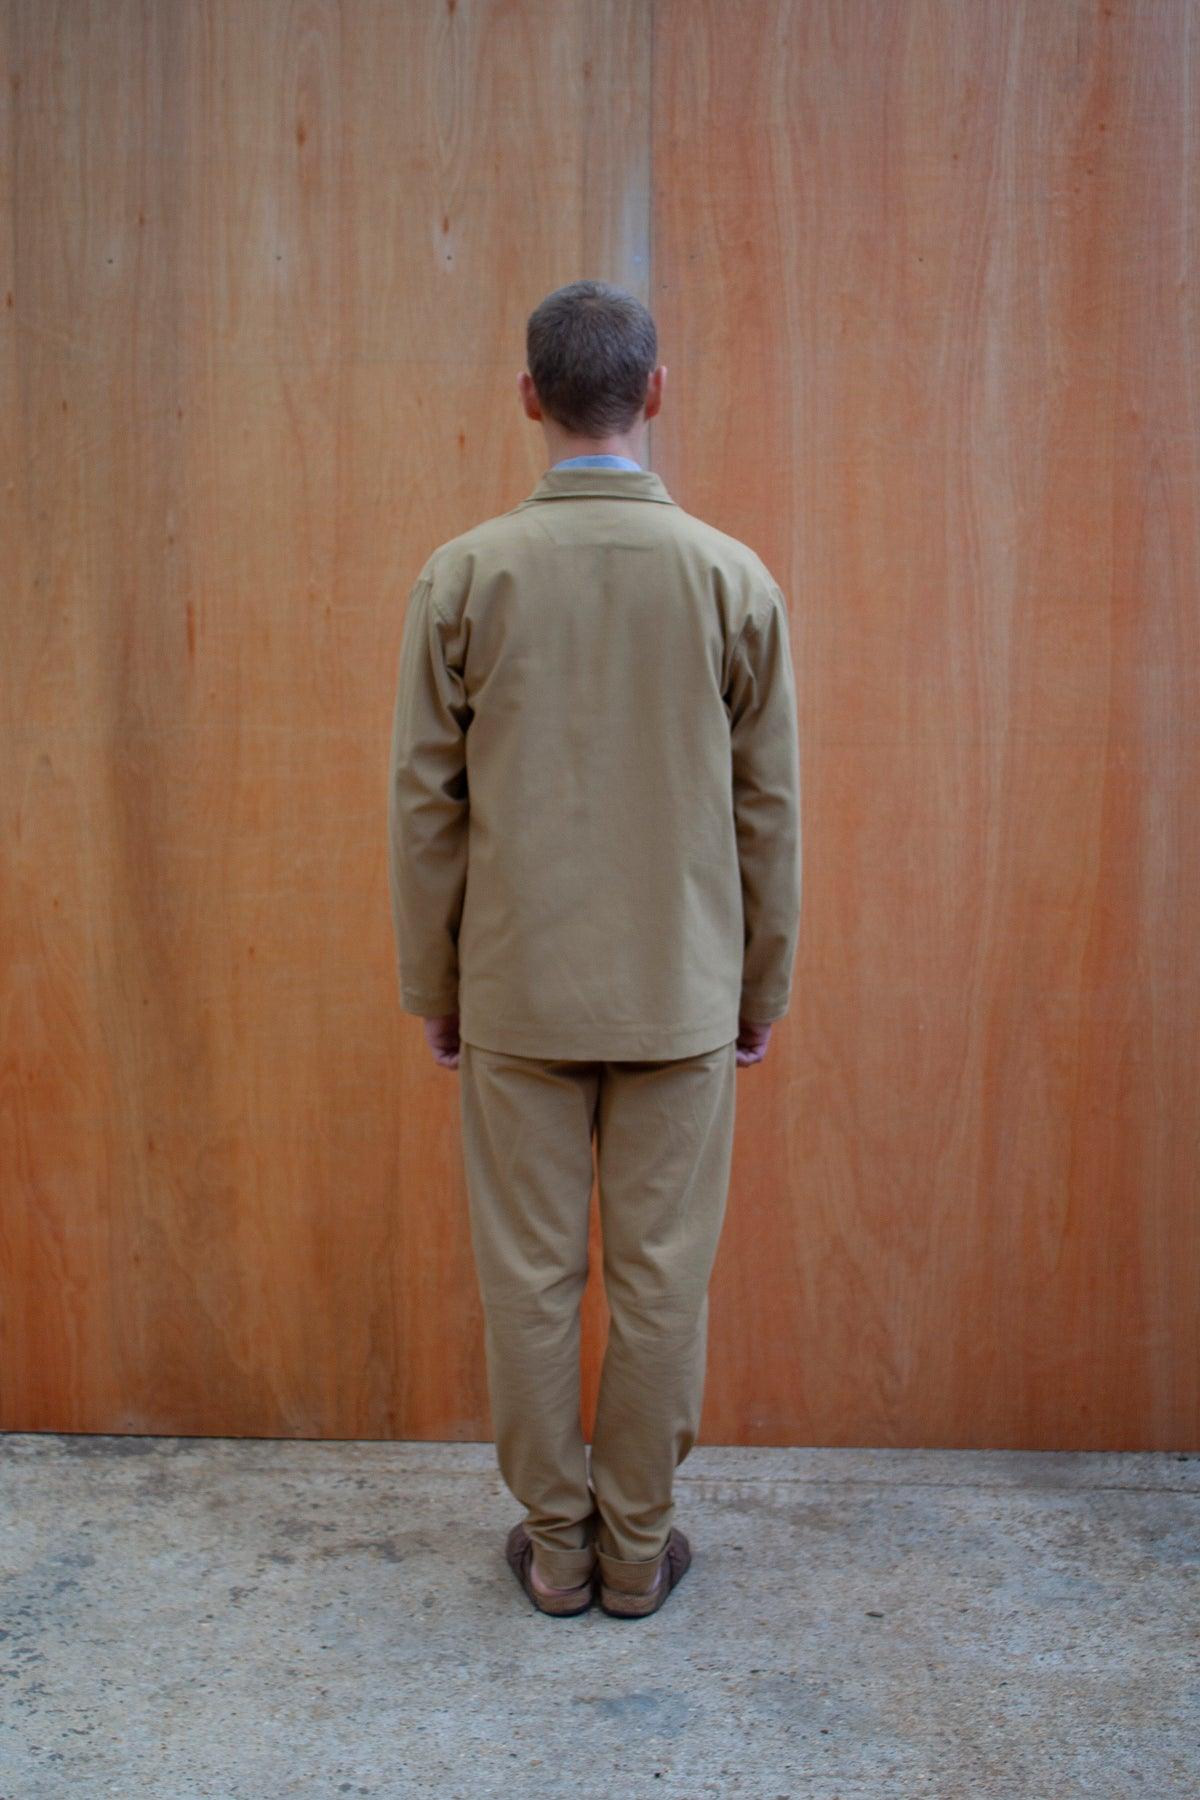 a young man standing against a wooden wall wearing a traditional chore jacket made in a sustainable tan  brushed cotton canvas